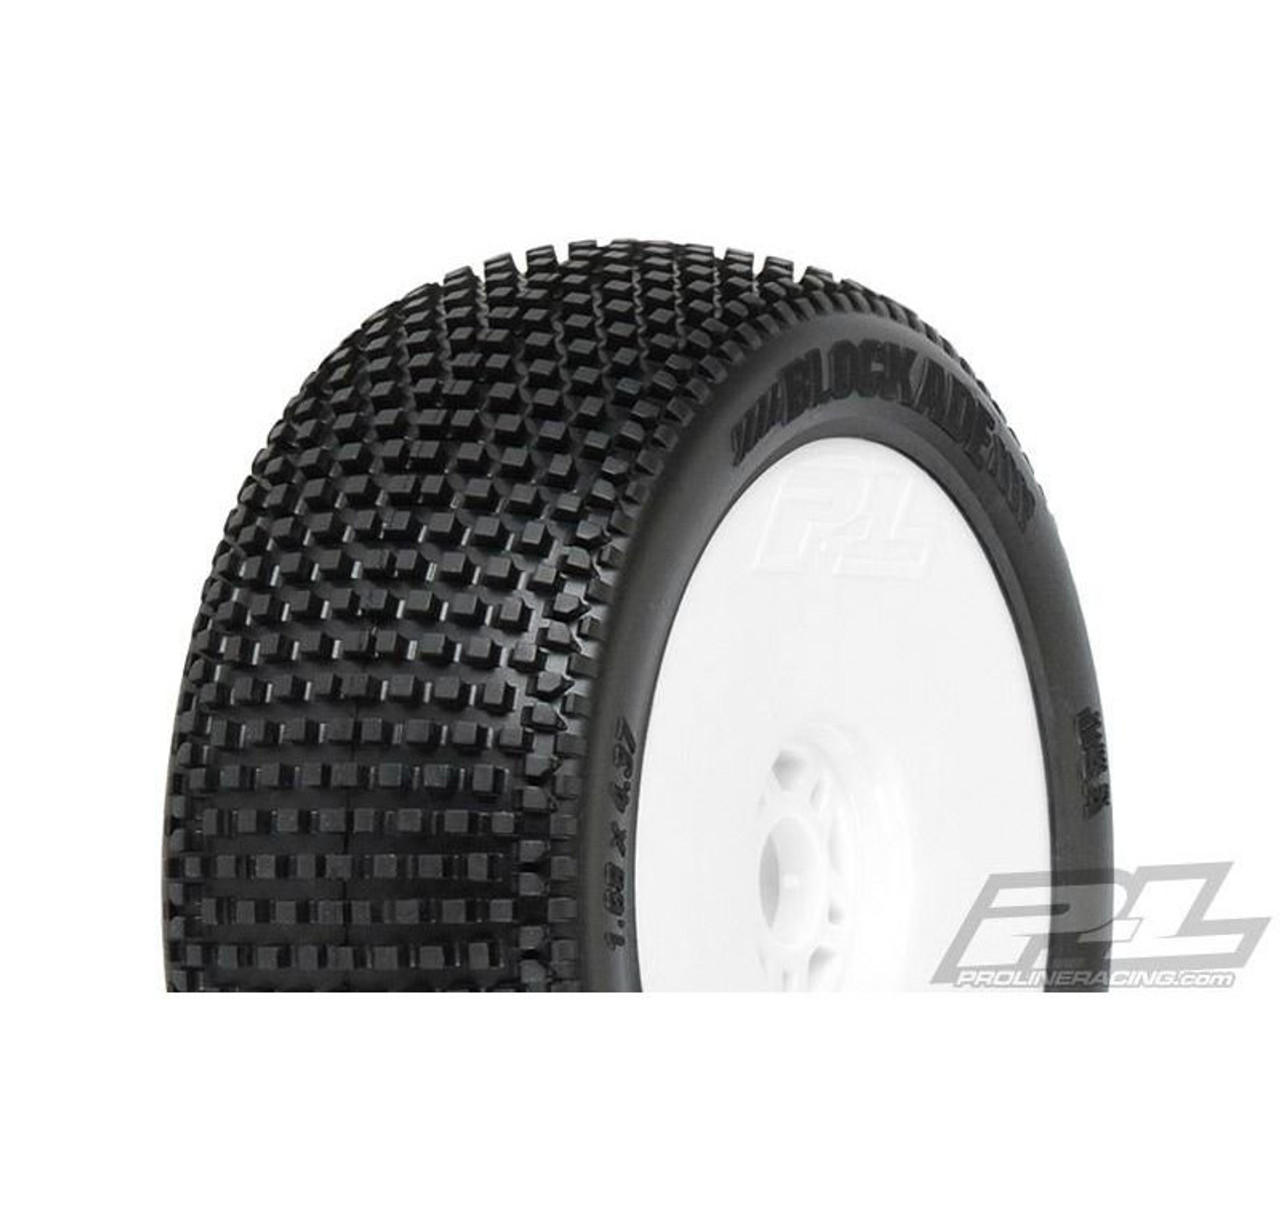 Pro-line 1/8th Buggy Tyres, 1 Pair - Mounted - Blockade - S3